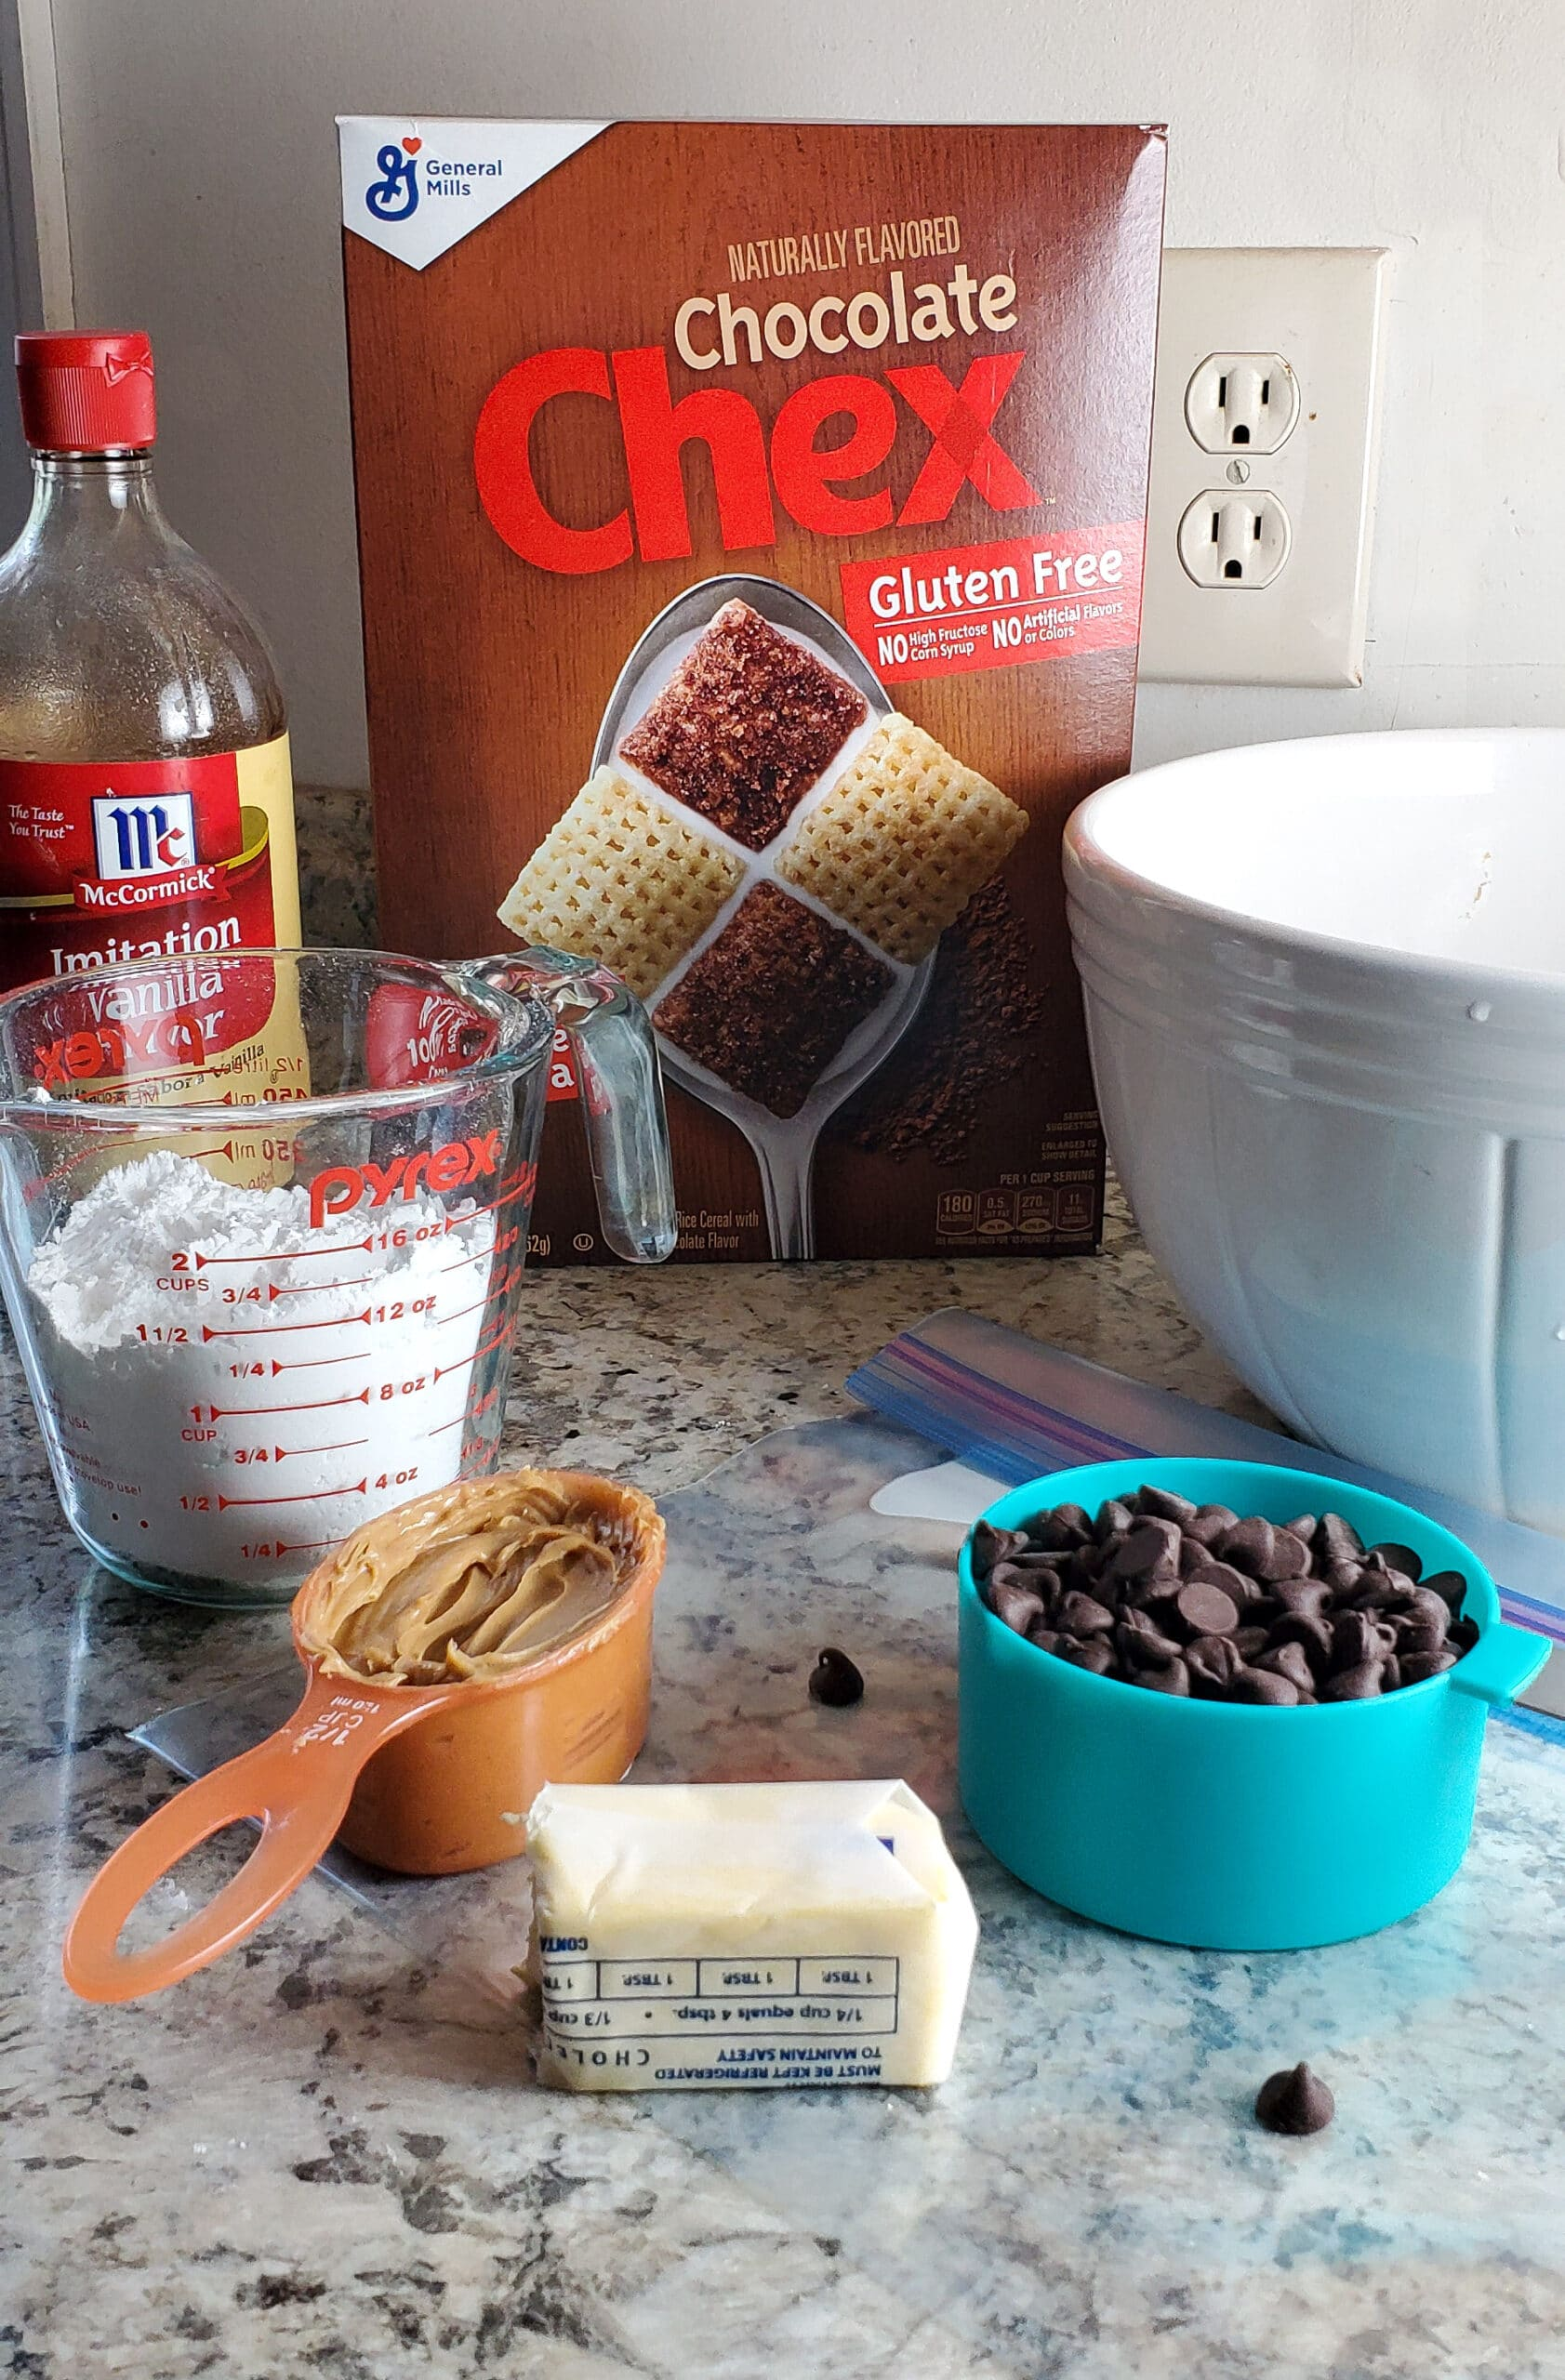 Scooby Snacks Ingredients. If you enjoy solving a good old mystery with your favorite gang of meddling kids, then you will love this Scooby Snack Recipe. It's full of chocolate, peanut butter and is said to be Scooby's favorite snack when he watches movies.